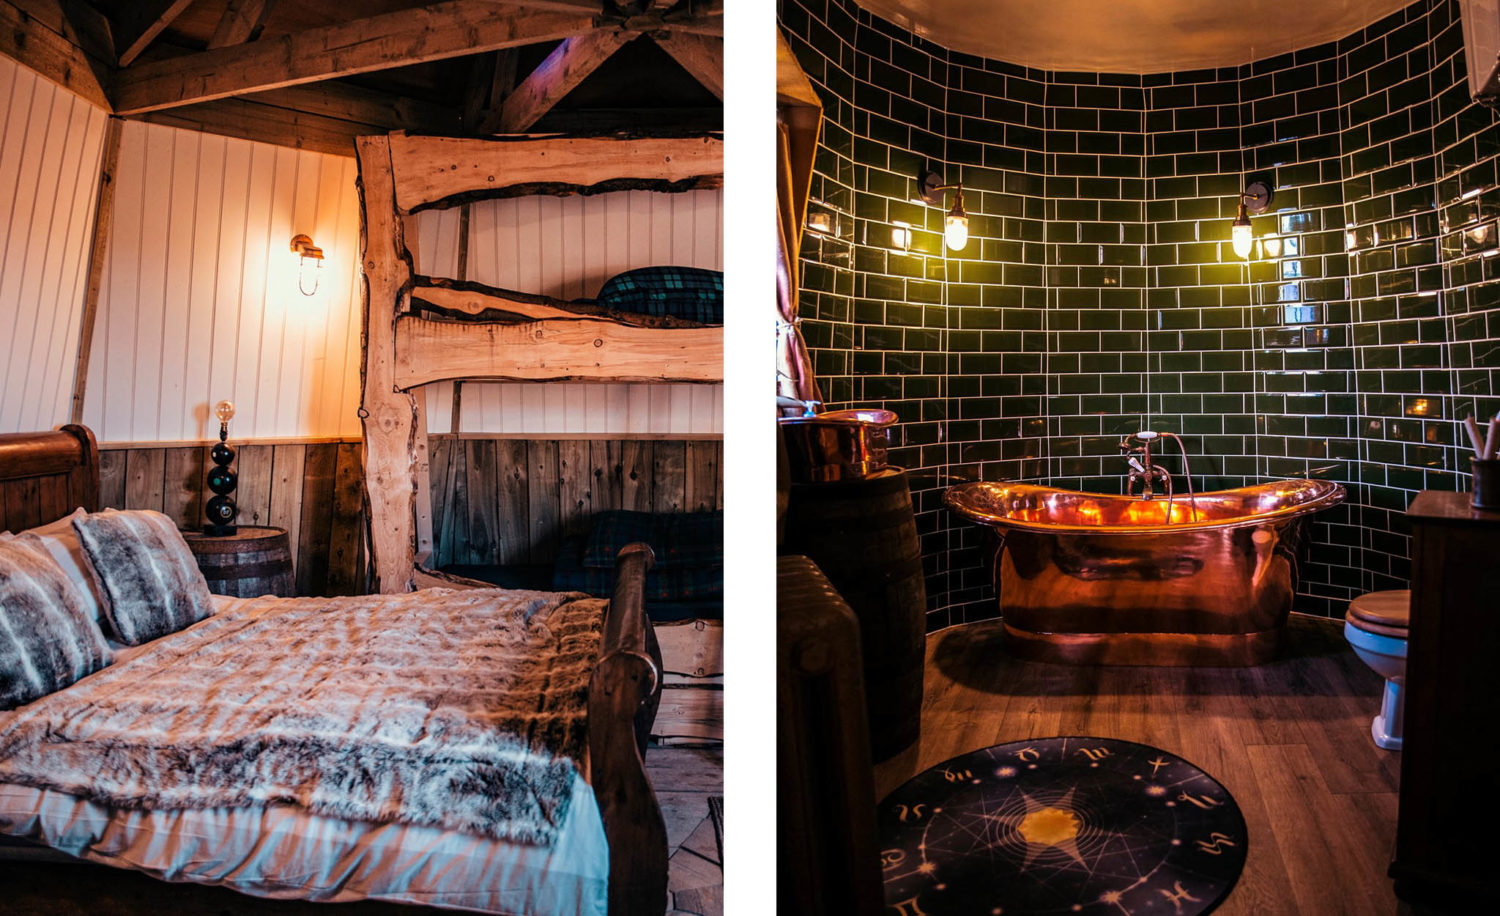 The wooden panels and bed frames give the bedroom a cozy feel, while the bathroom tiles resemble the Ministry of Magic.